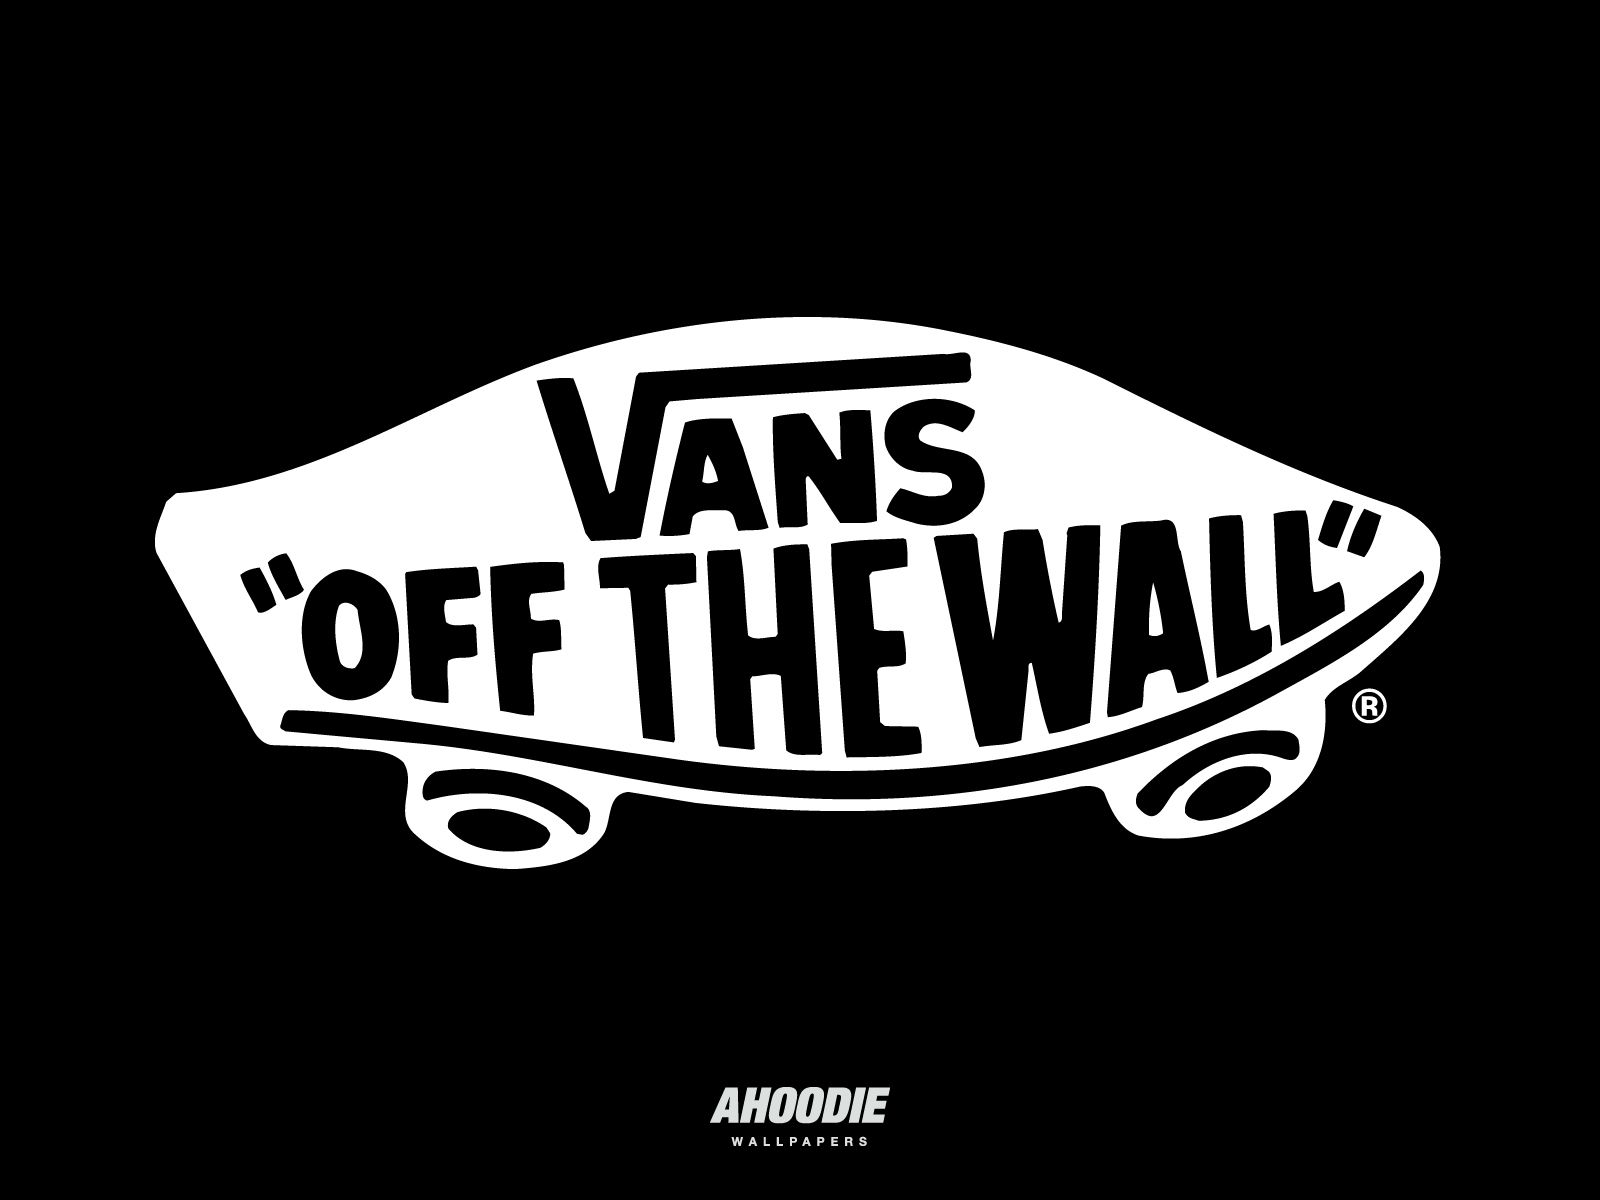 Wallpapers Wallpaper Vans Off The Wall Hd Dengan Gambar